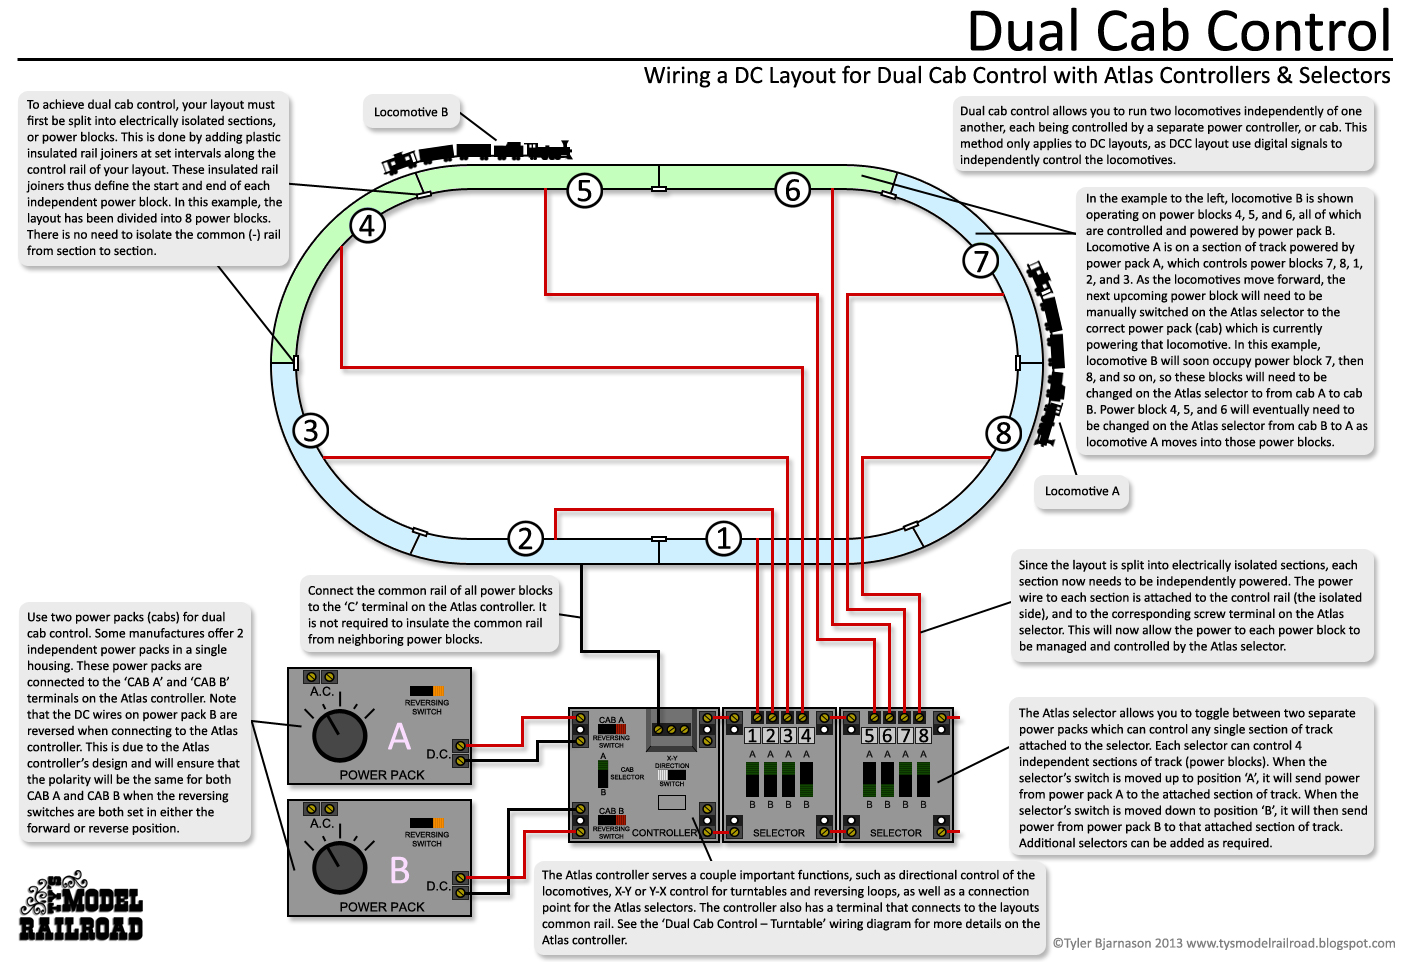 how to wire a layout for dual cab control using an atlas controller and selectors  [ 1409 x 962 Pixel ]